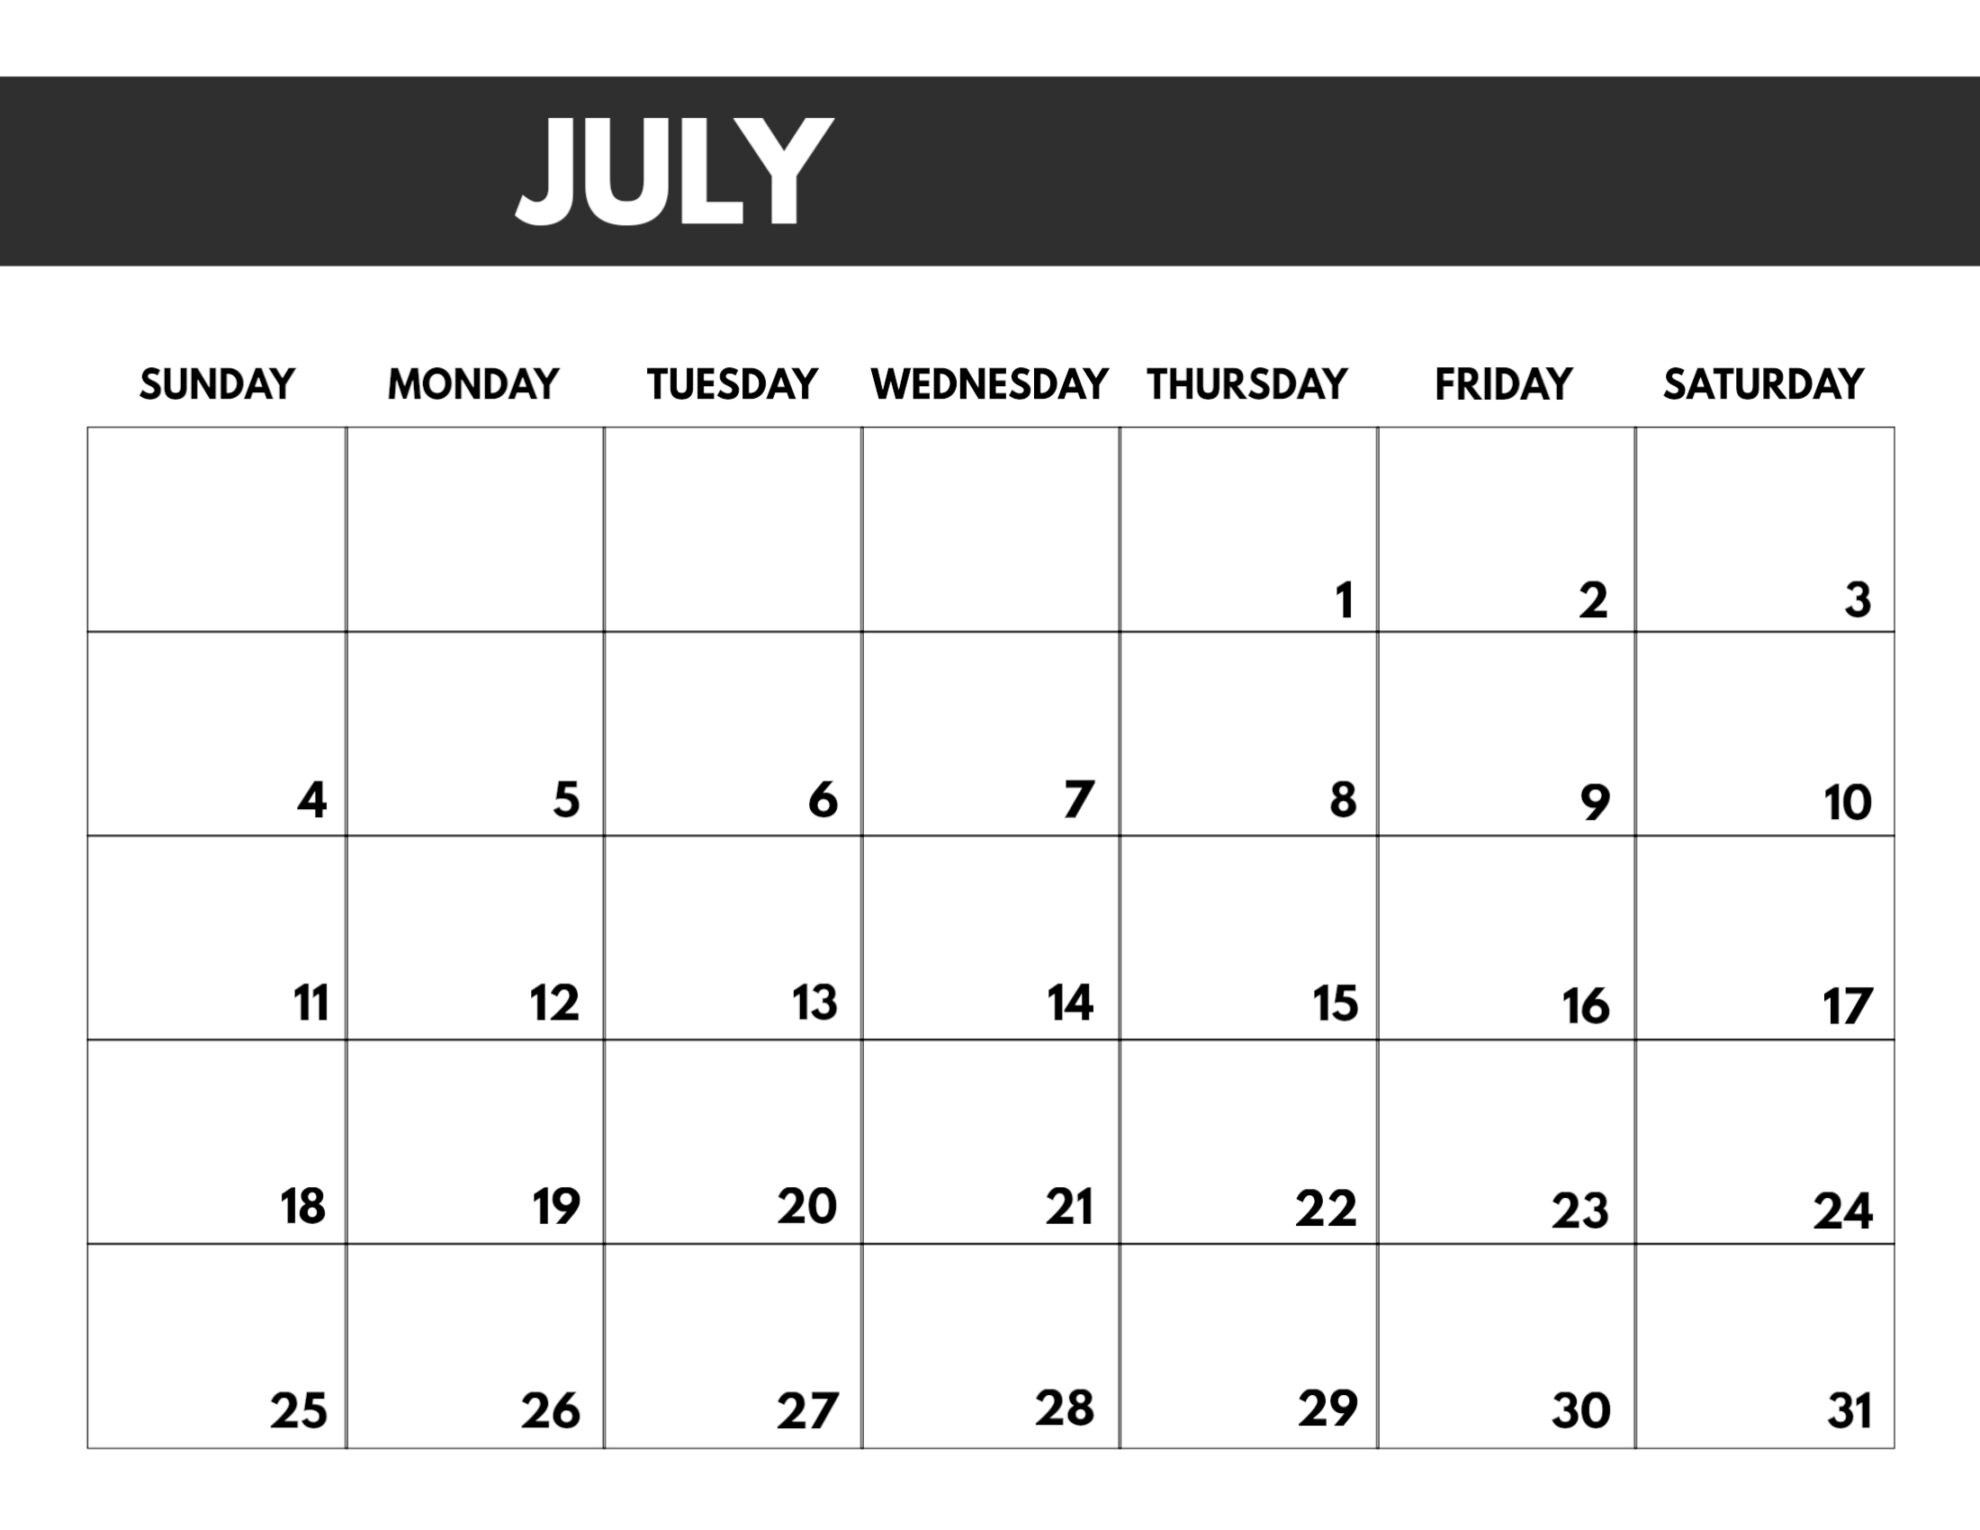 2021 Free Monthly Calendar Templates   Paper Trail Design-Free Printable Calendar 2021 4 Months Per Page May August